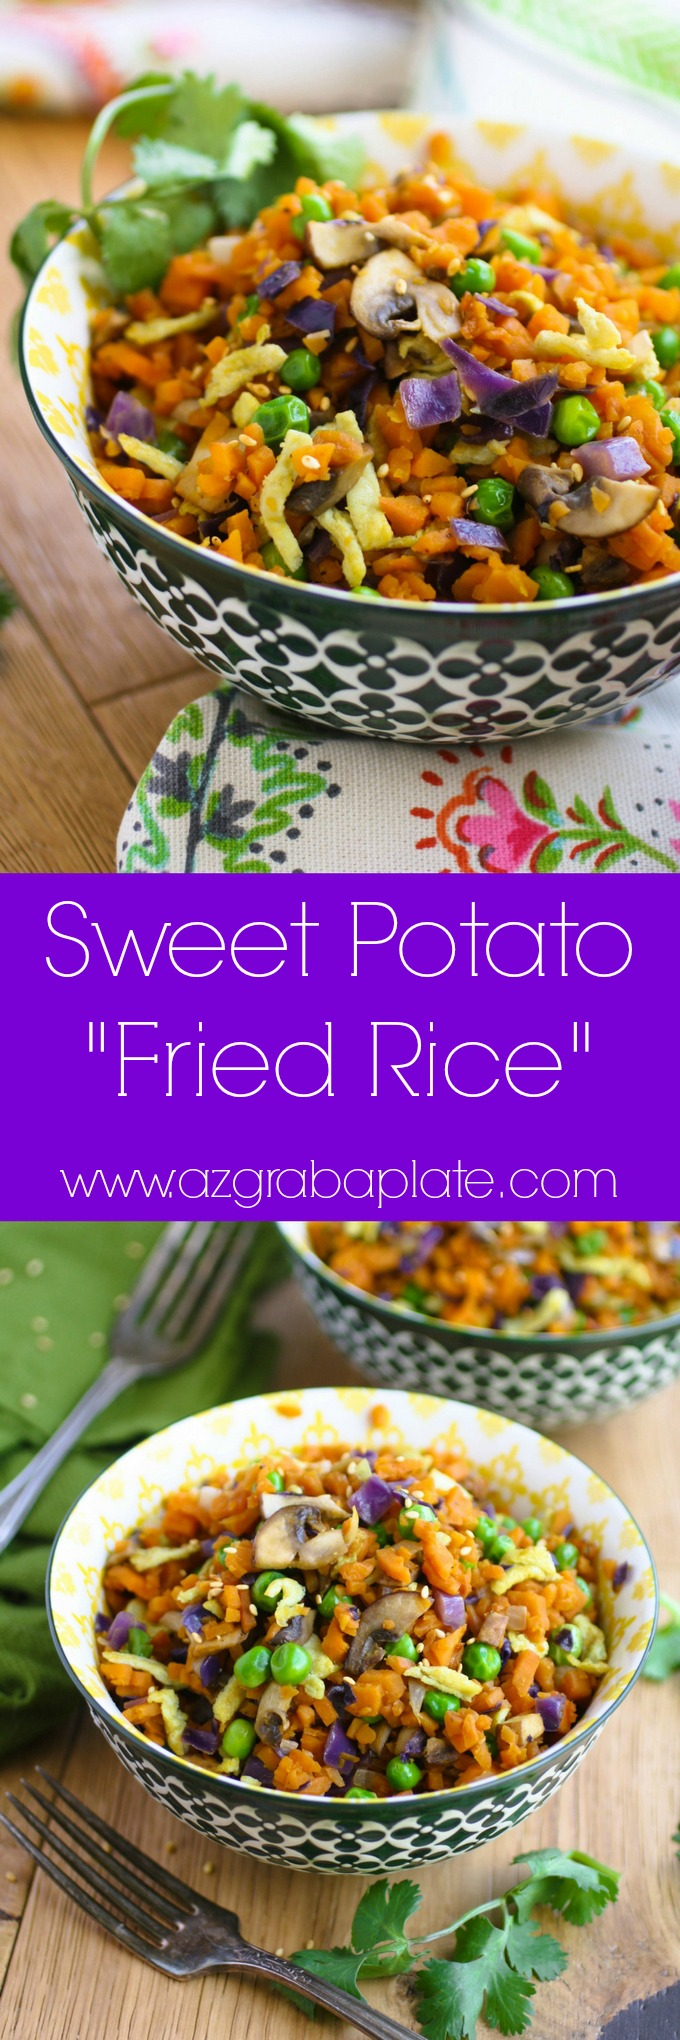 "Sweet Potato ""Fried Rice"""